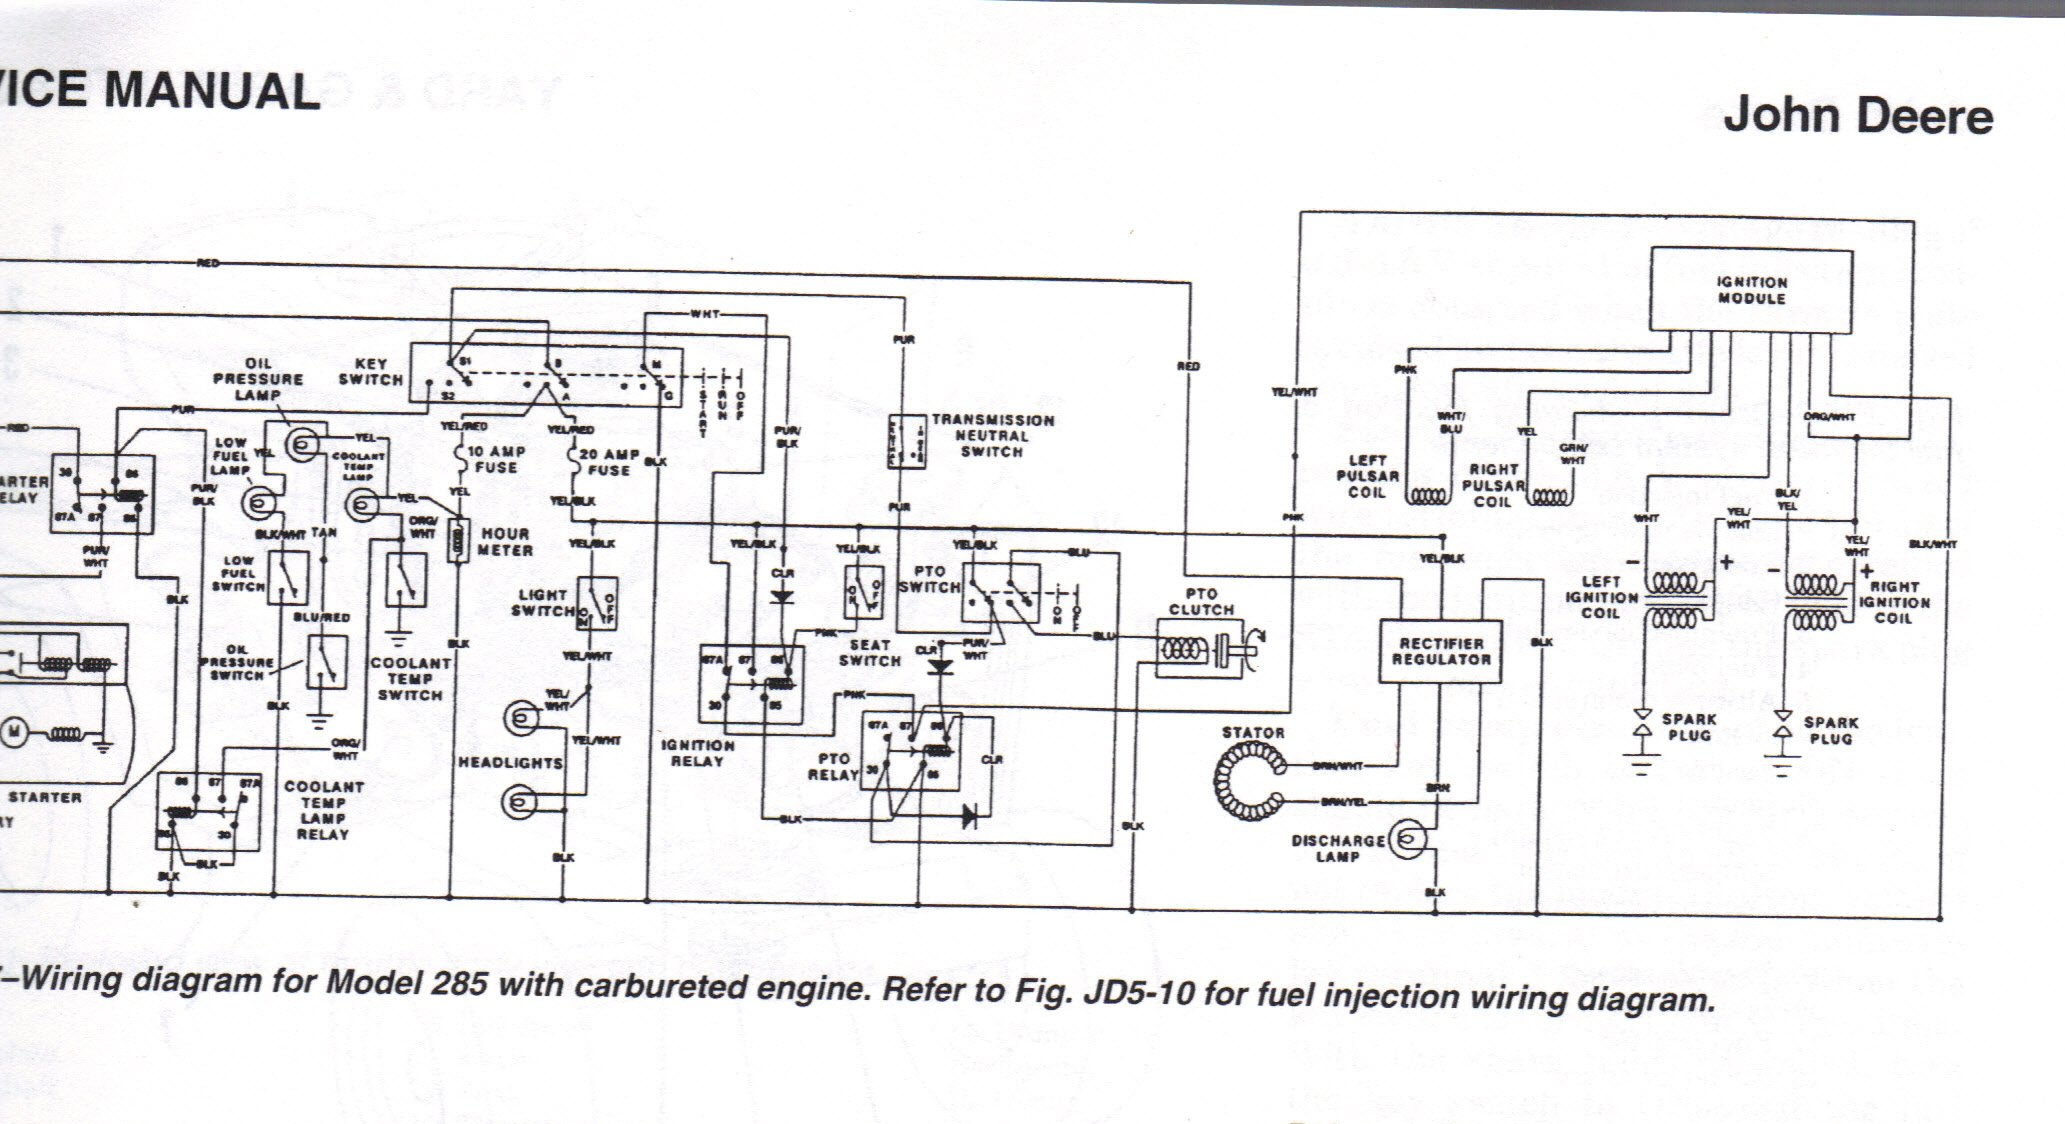 john deere wiring diagram pdf john image john deere engine diagram john wiring diagrams on john deere 318 wiring diagram pdf